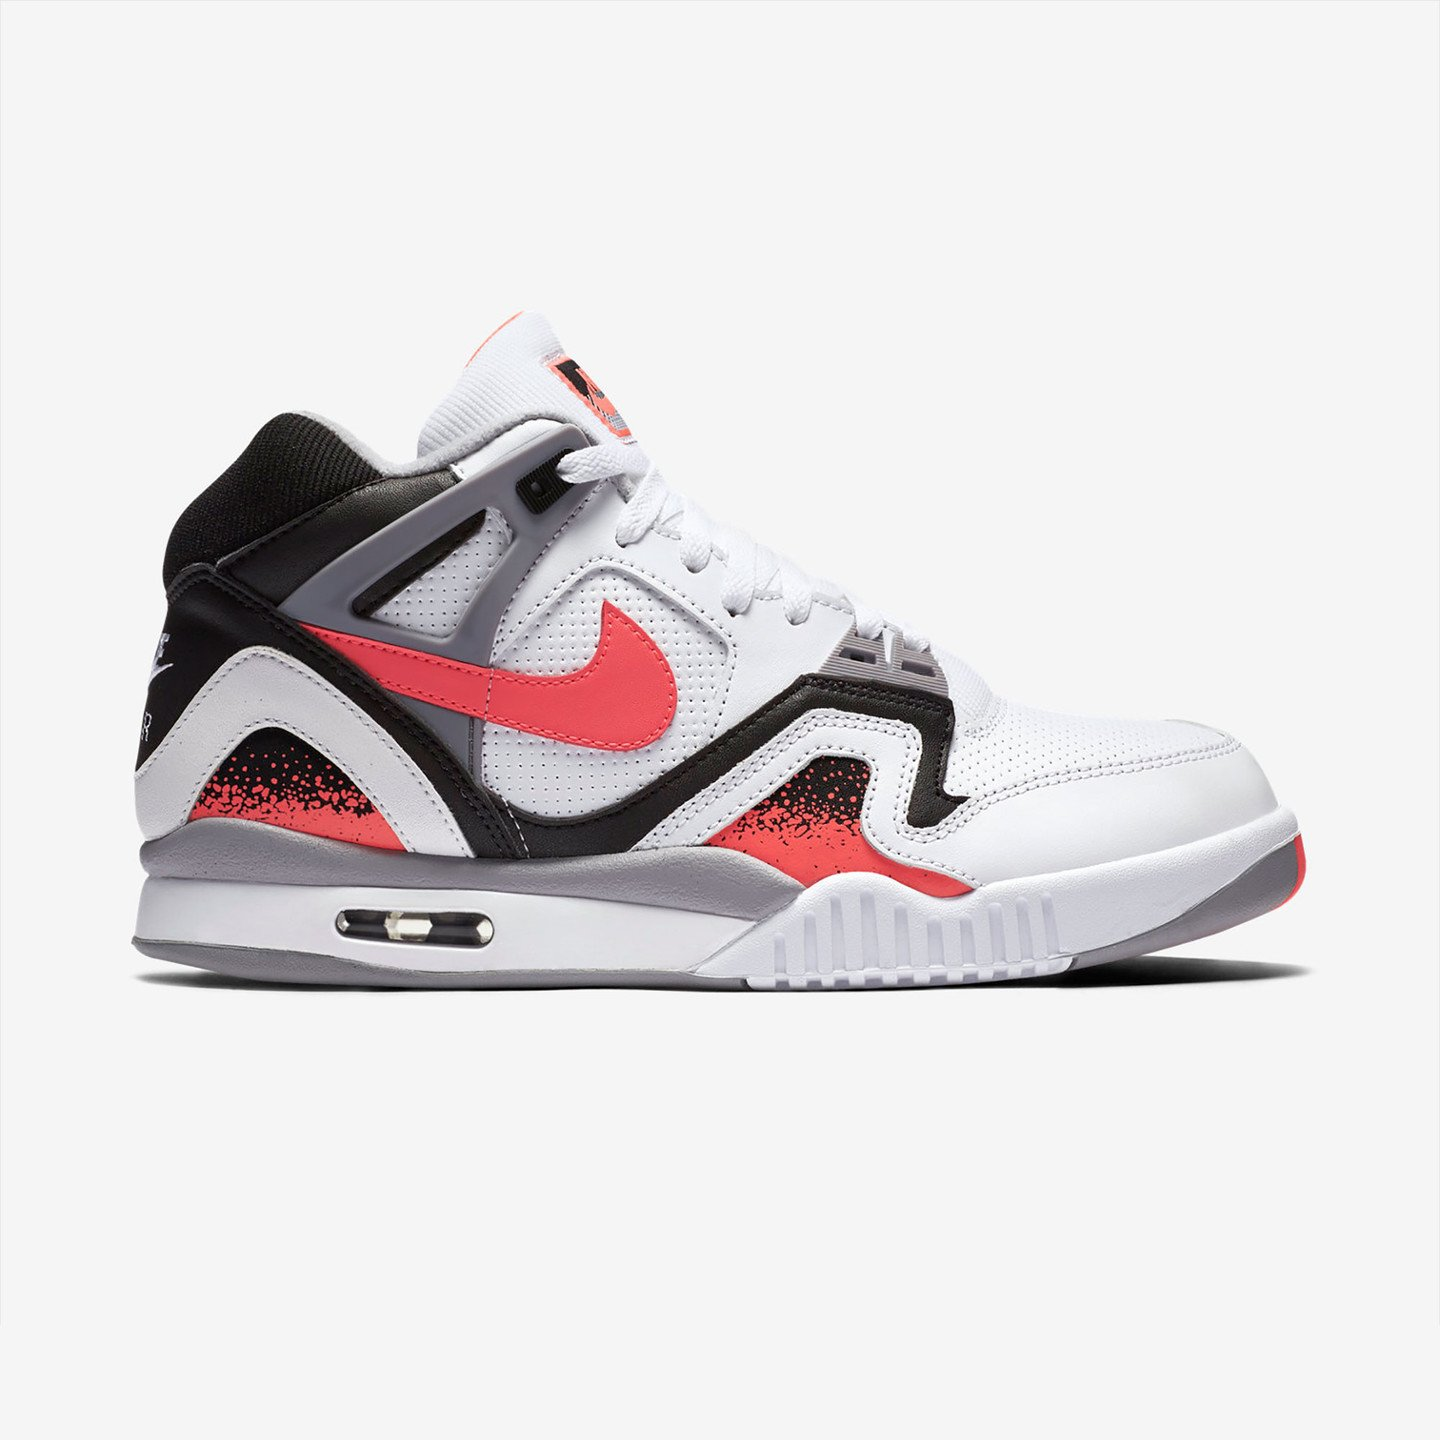 Nike Air Tech Challenge II White / Hot Lava 318408-104-40